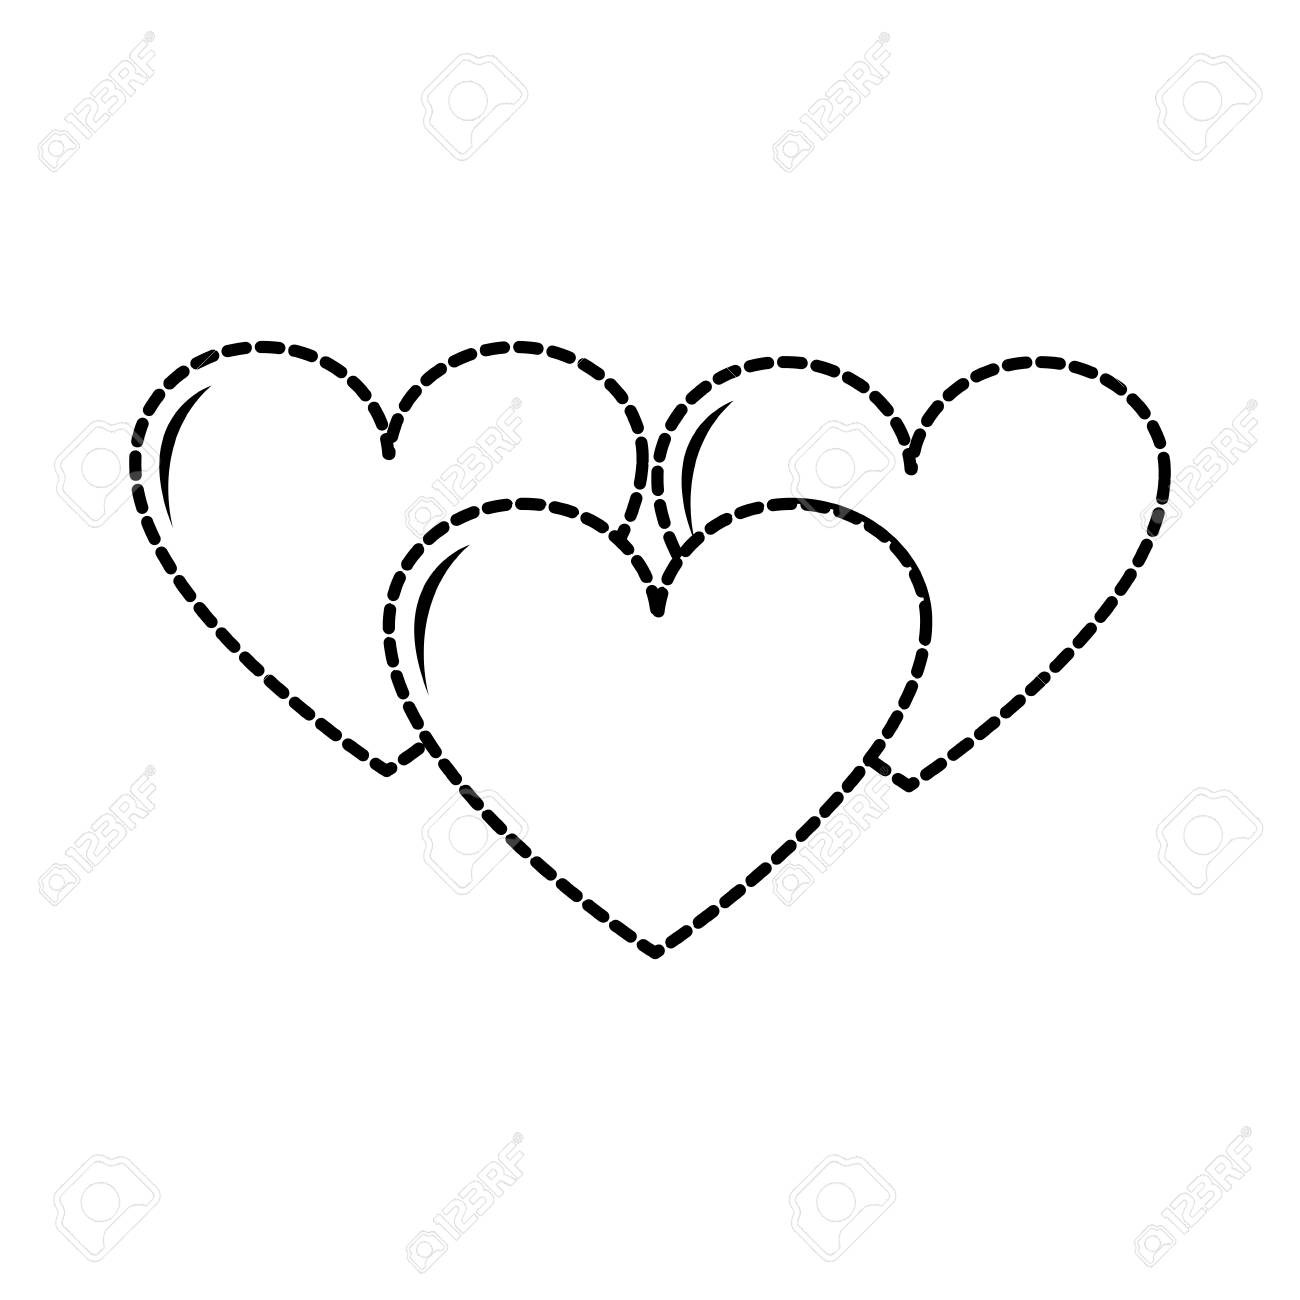 Dotted Shape Hearts Love Symbol Of Passion Design Icon Vector